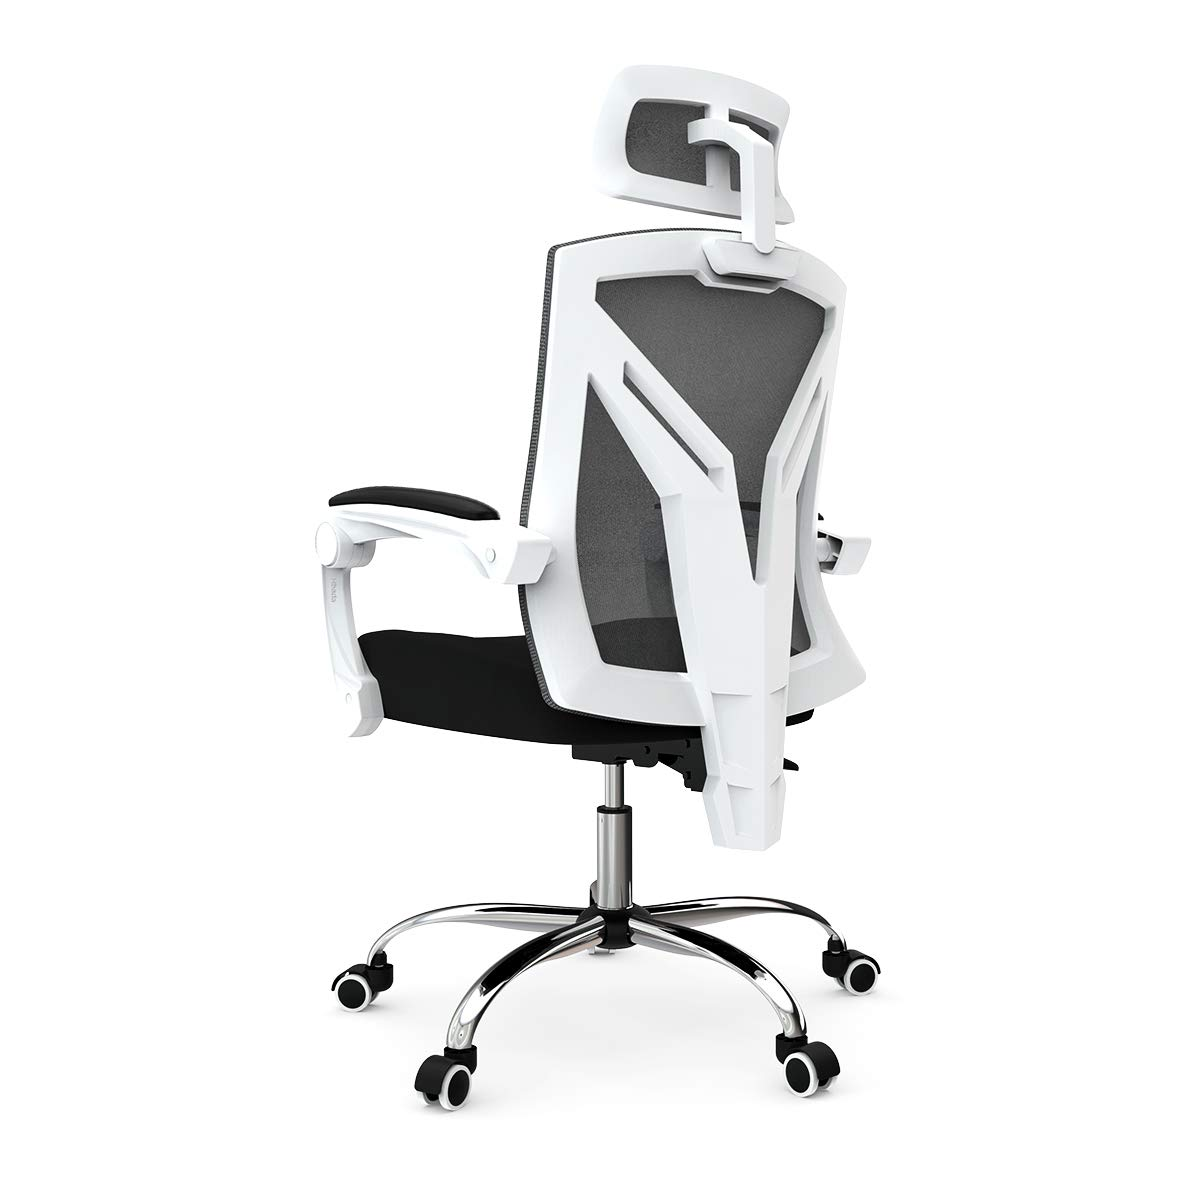 Hbada Ergonomic Office Chair - High-Back Desk Chair Racing Style with Lumbar Support - Height Adjustable Seat,Headrest- Breathable Mesh Back - Soft Foam Seat Cushion, White by Hbada (Image #1)